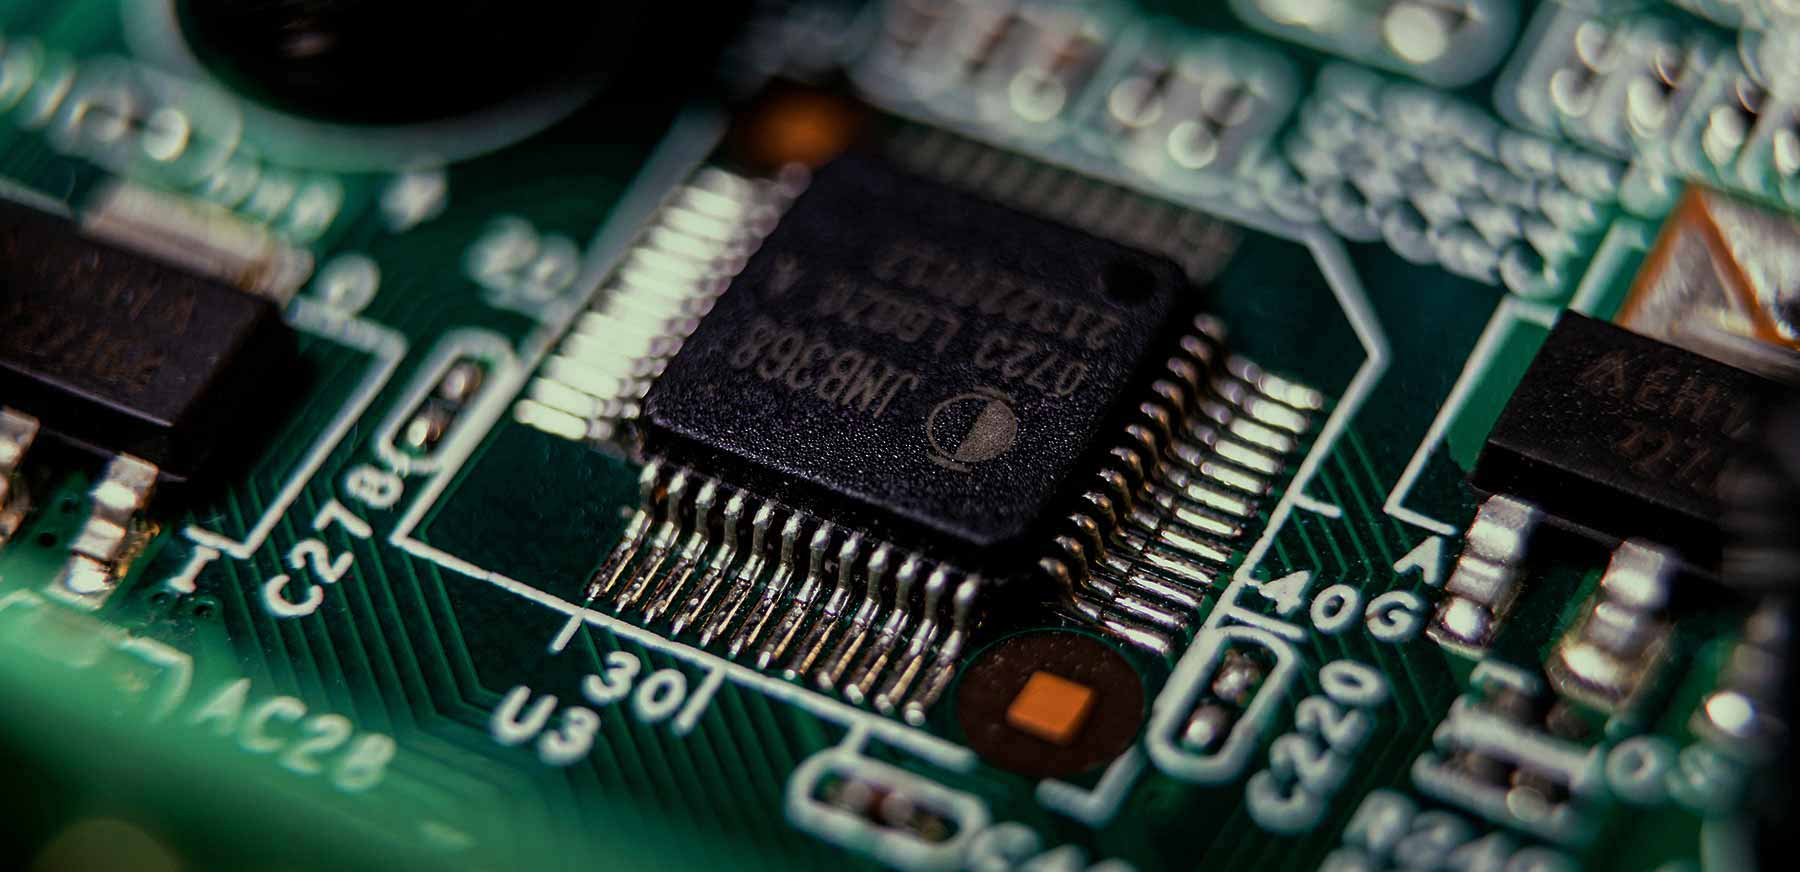 CIRCUITSTATE-Electronics-Services-Embedded-System-Design-Background-Image-02-2